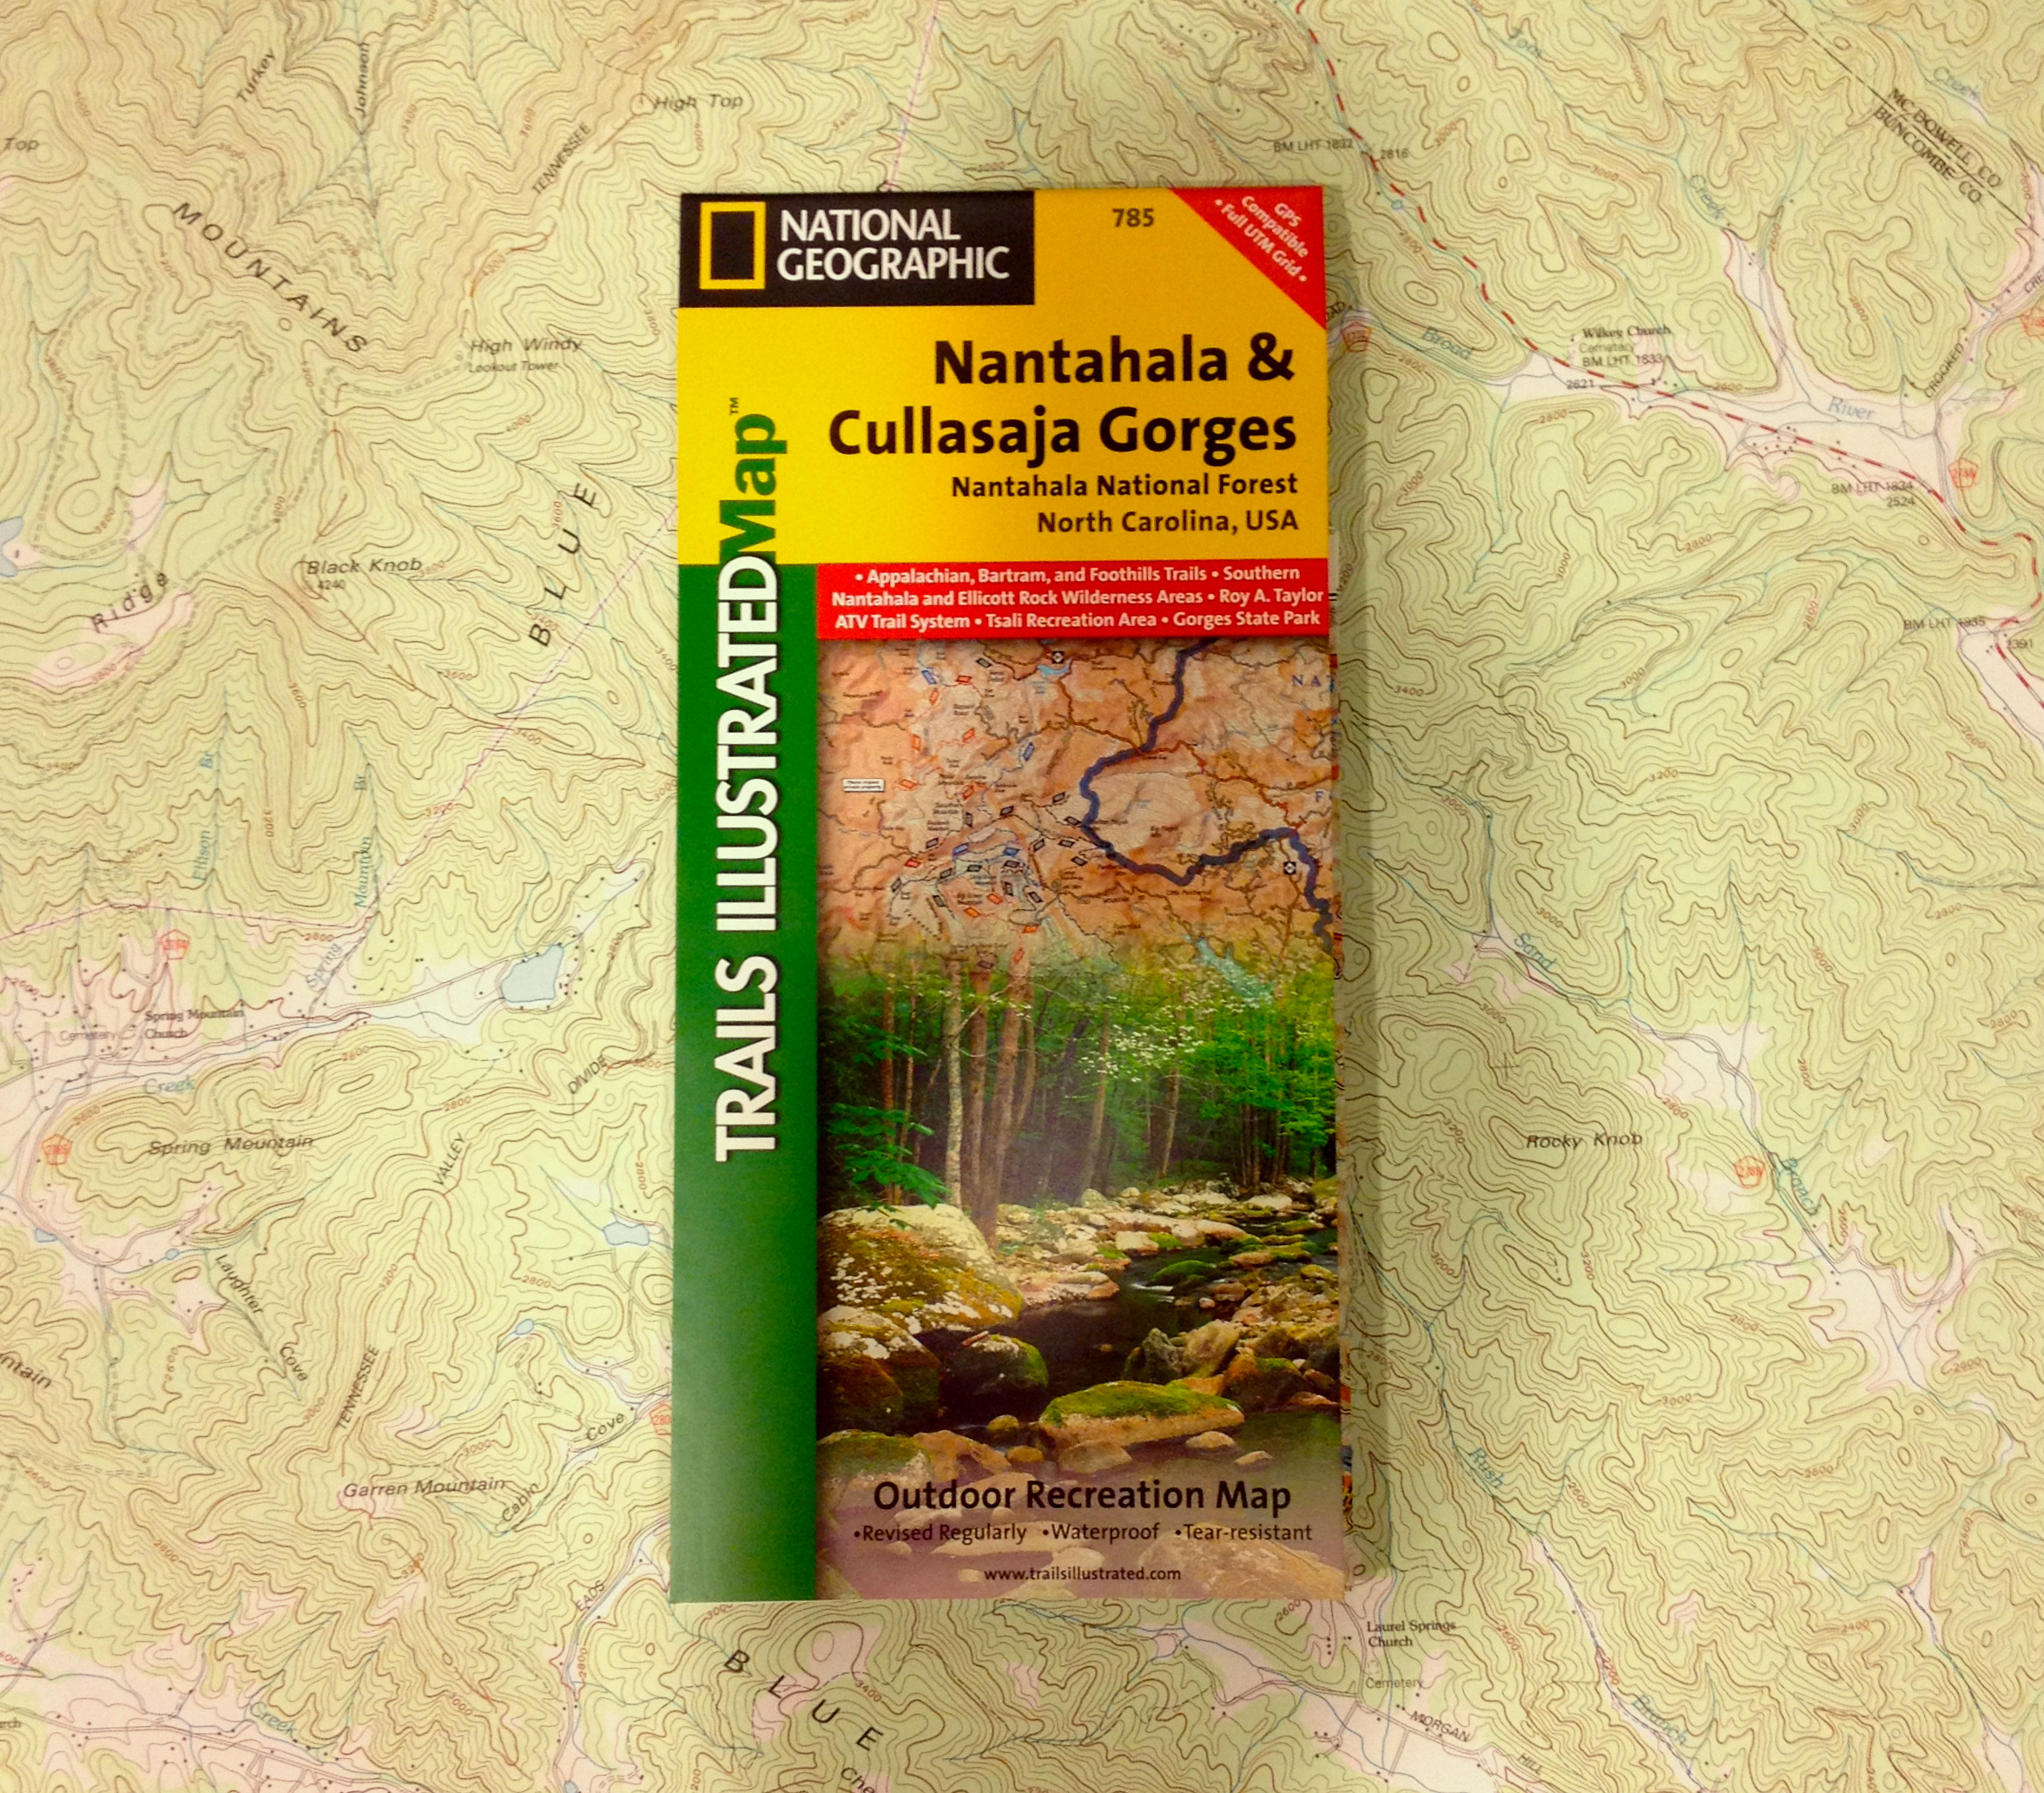 National Geographic Trails illustrated Map - Nantahala & Culasaja Gorges (785)